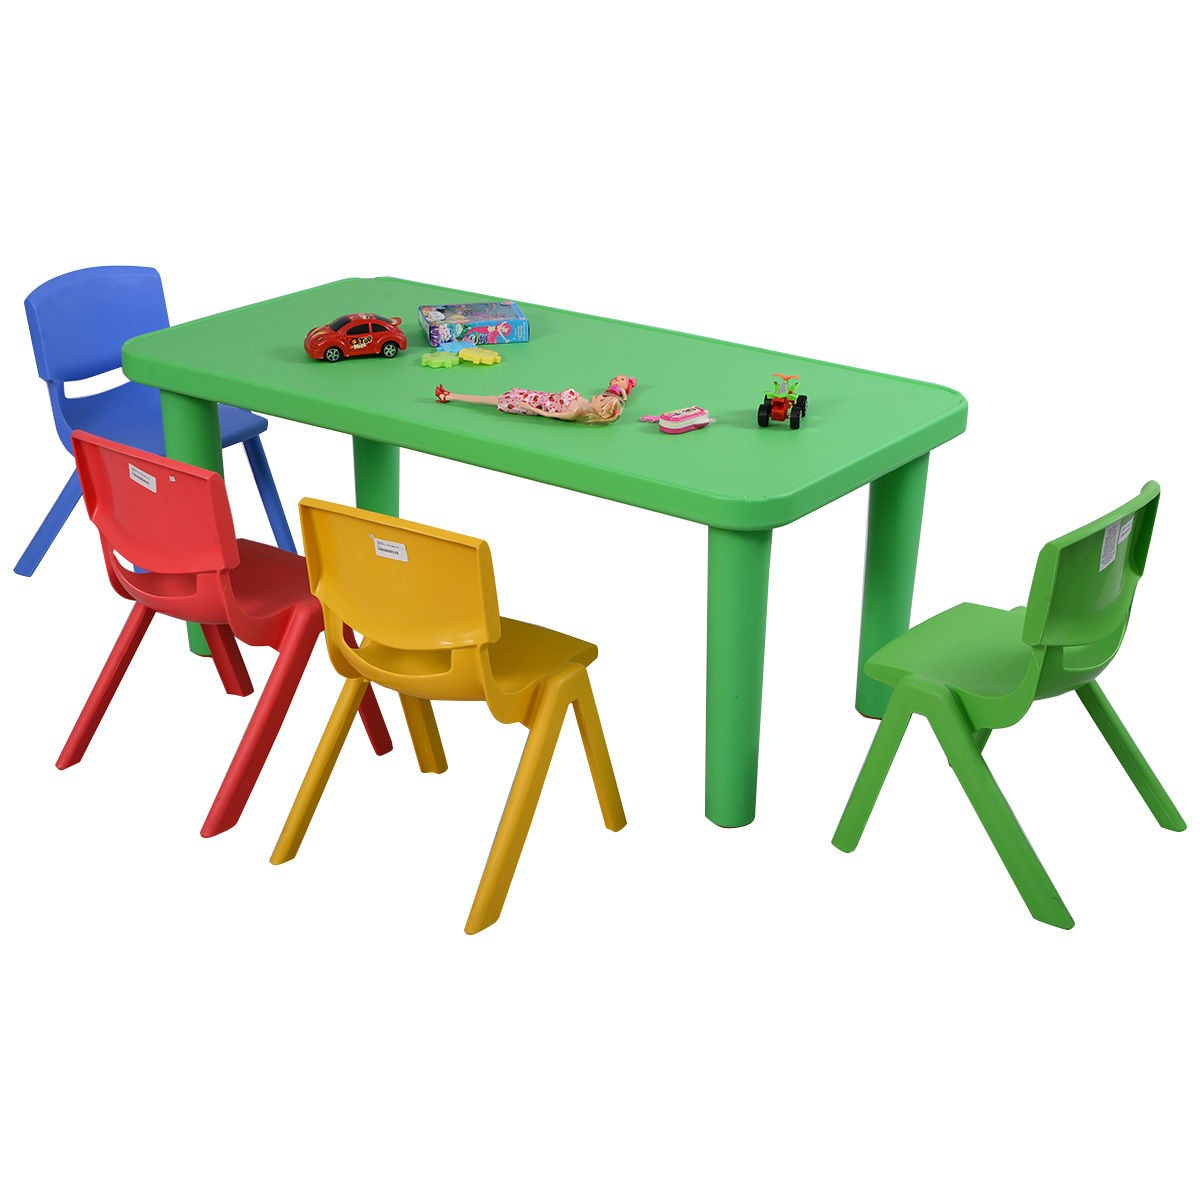 Kids Plastic Table And Chairs Fun Kids Plastic Table And 4 Chairs Set Colorful Play